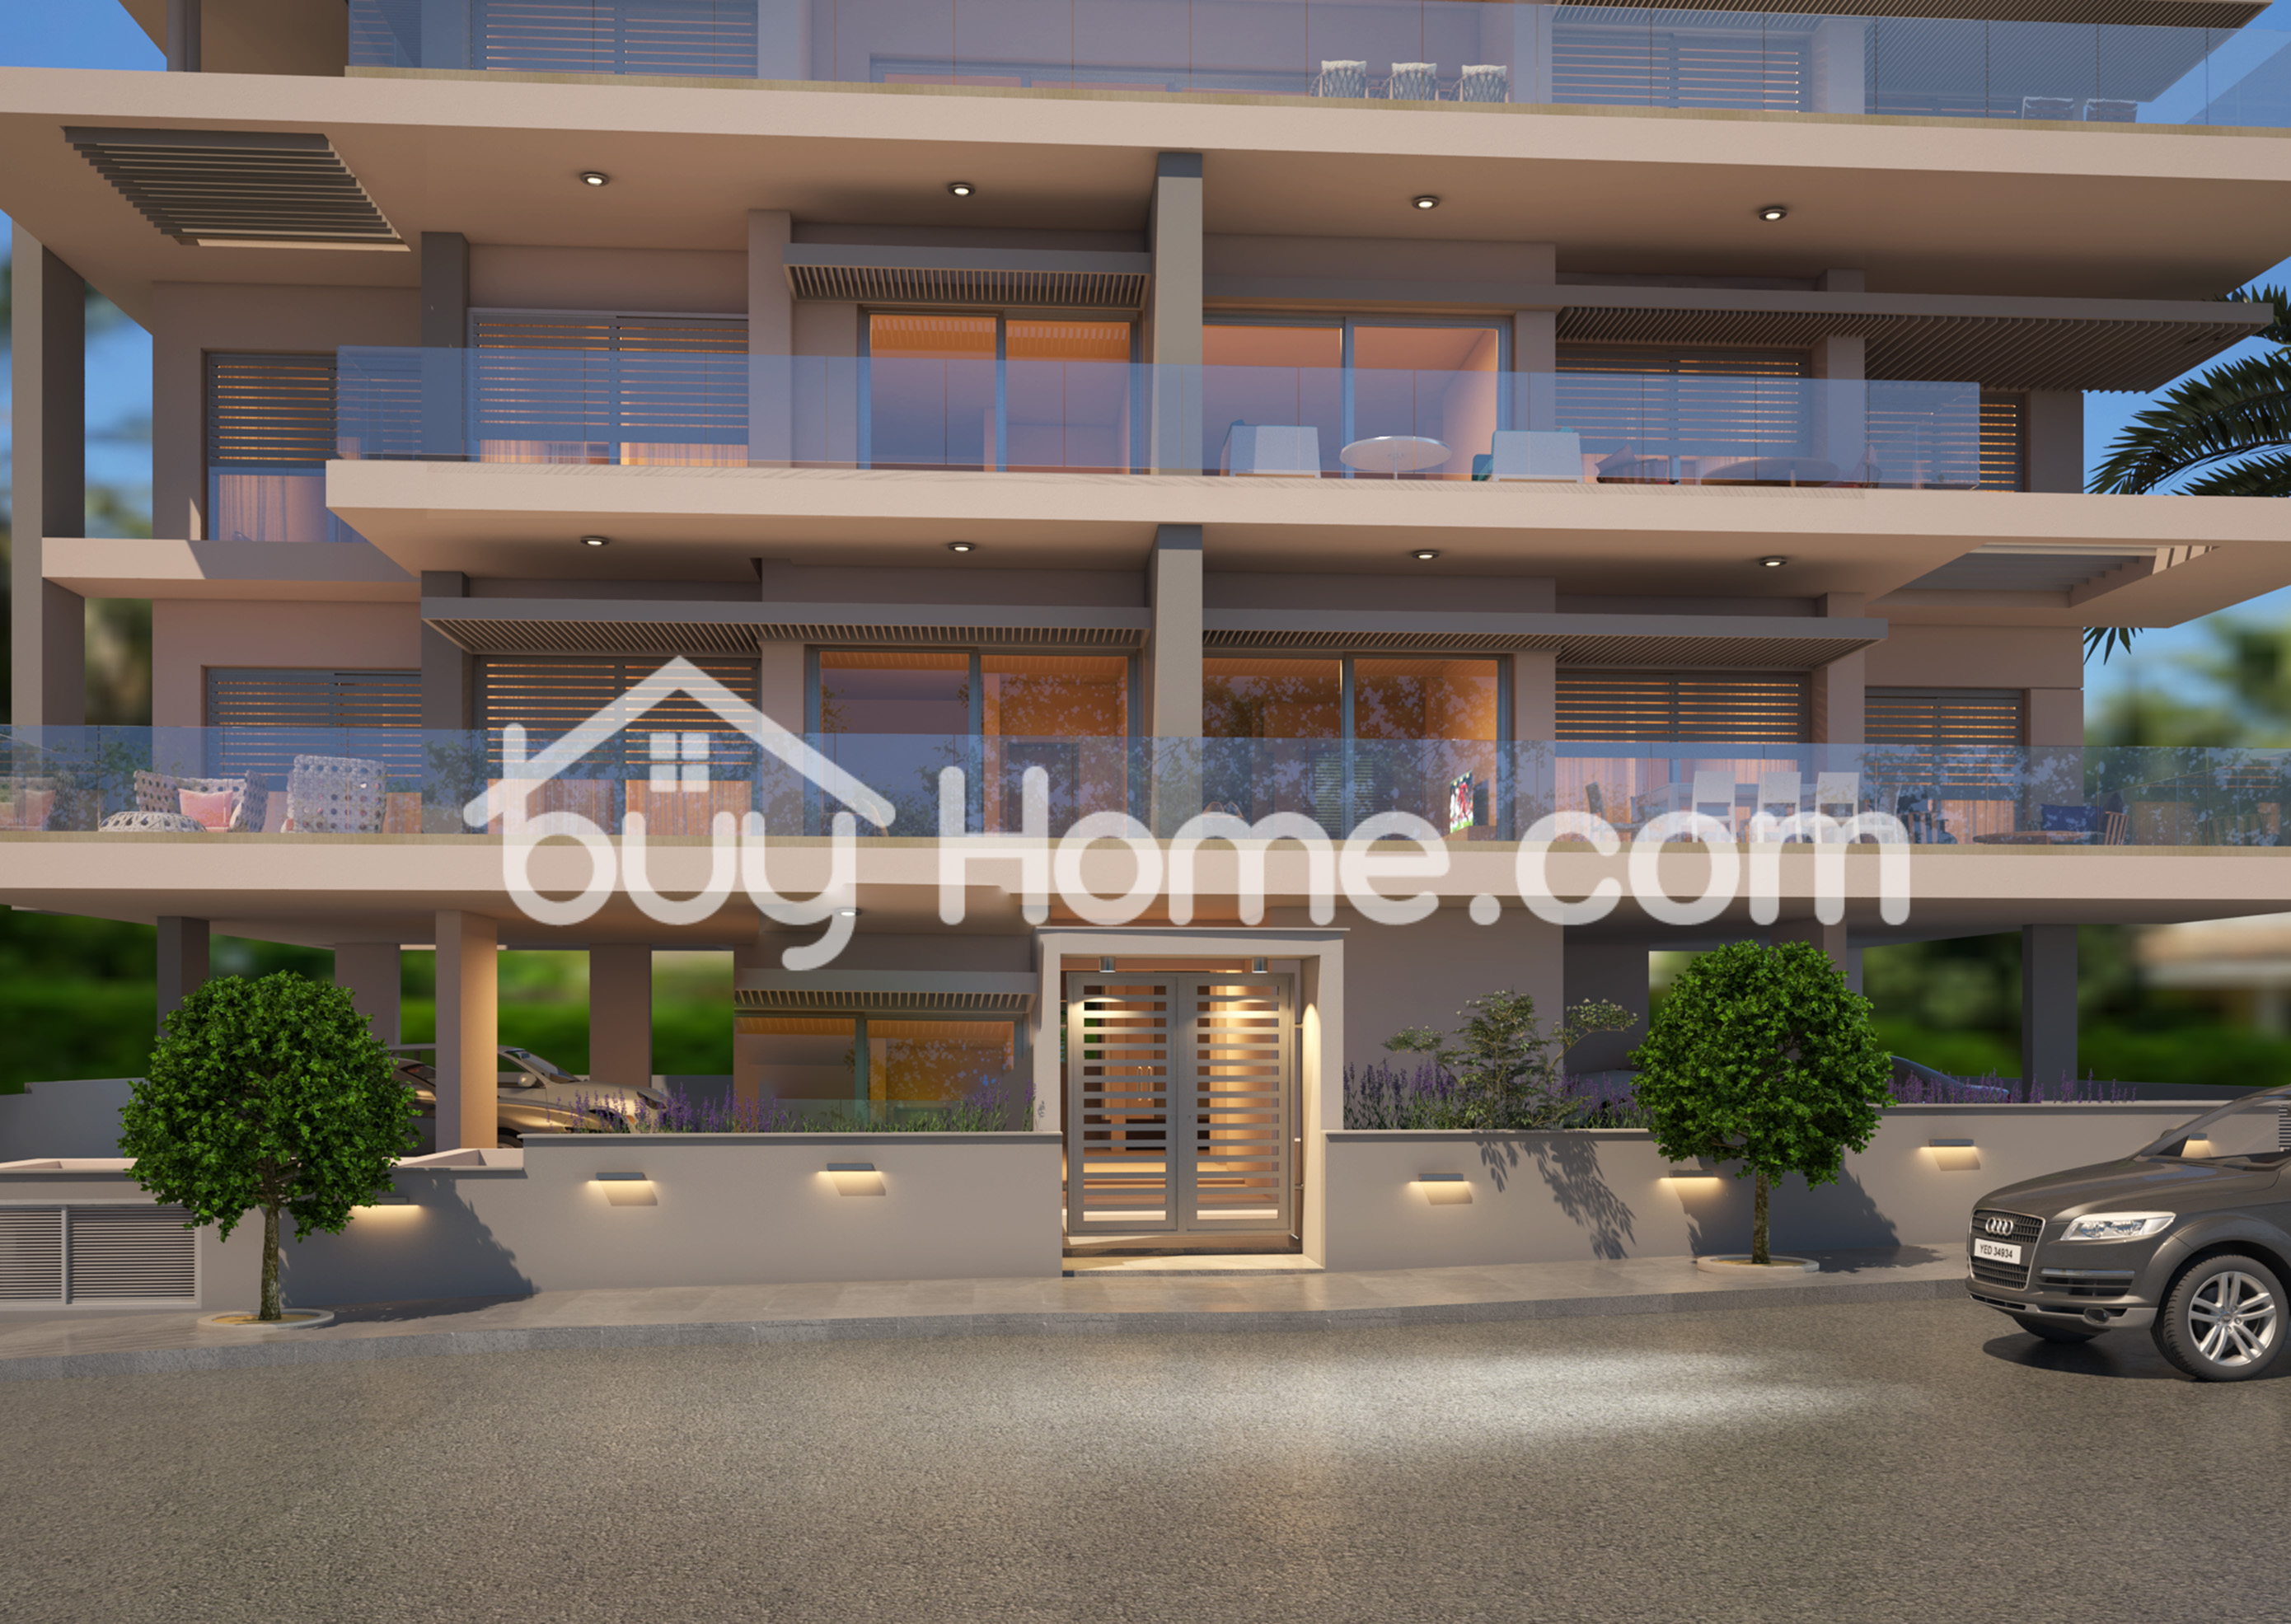 Selection of Luxury Apartments | BuyHome